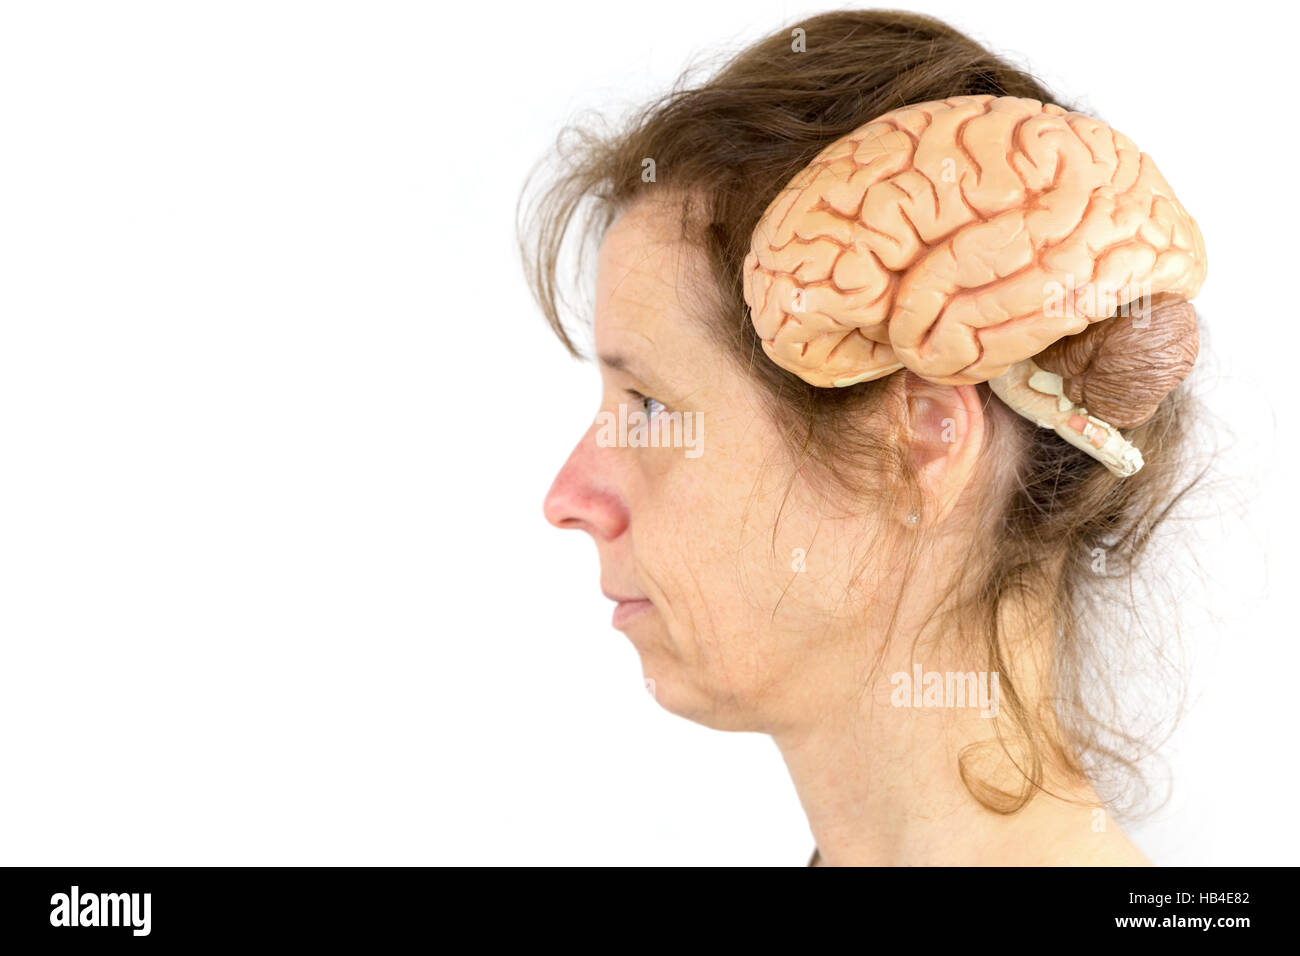 Head of woman with model of human brains - Stock Image